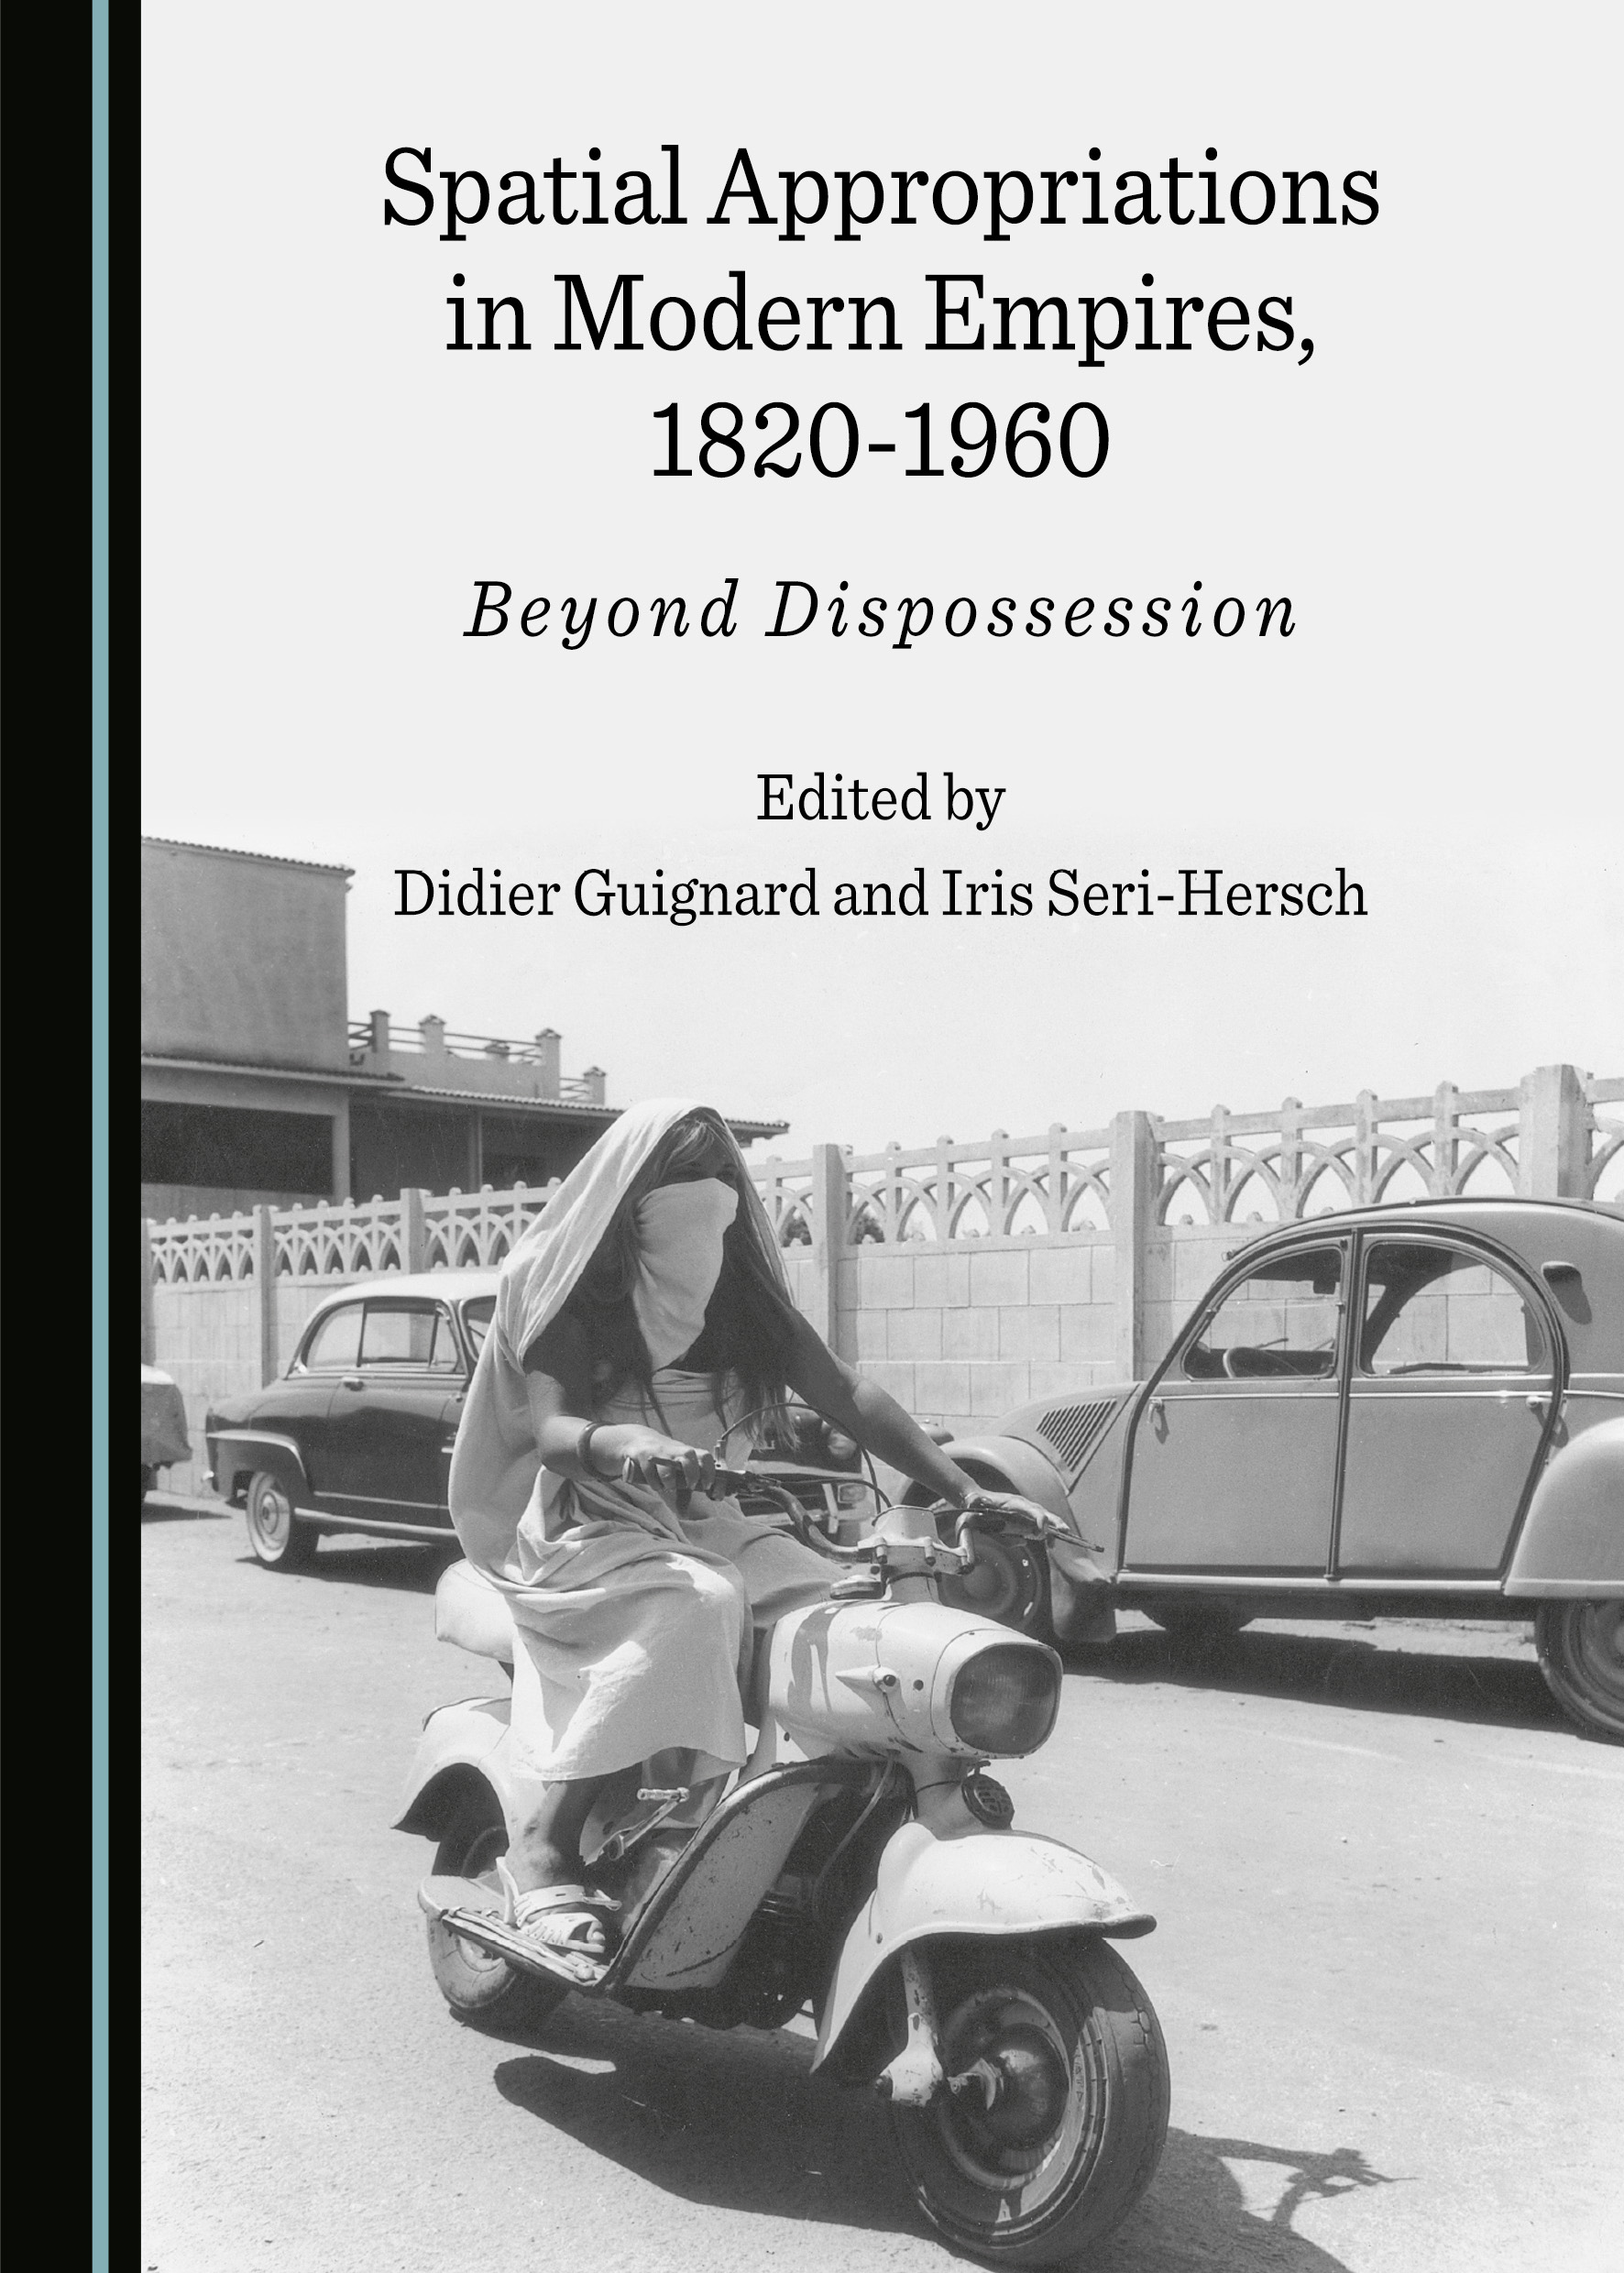 Spatial Appropriations in Modern Empires, 1820-1960: Beyond Dispossession